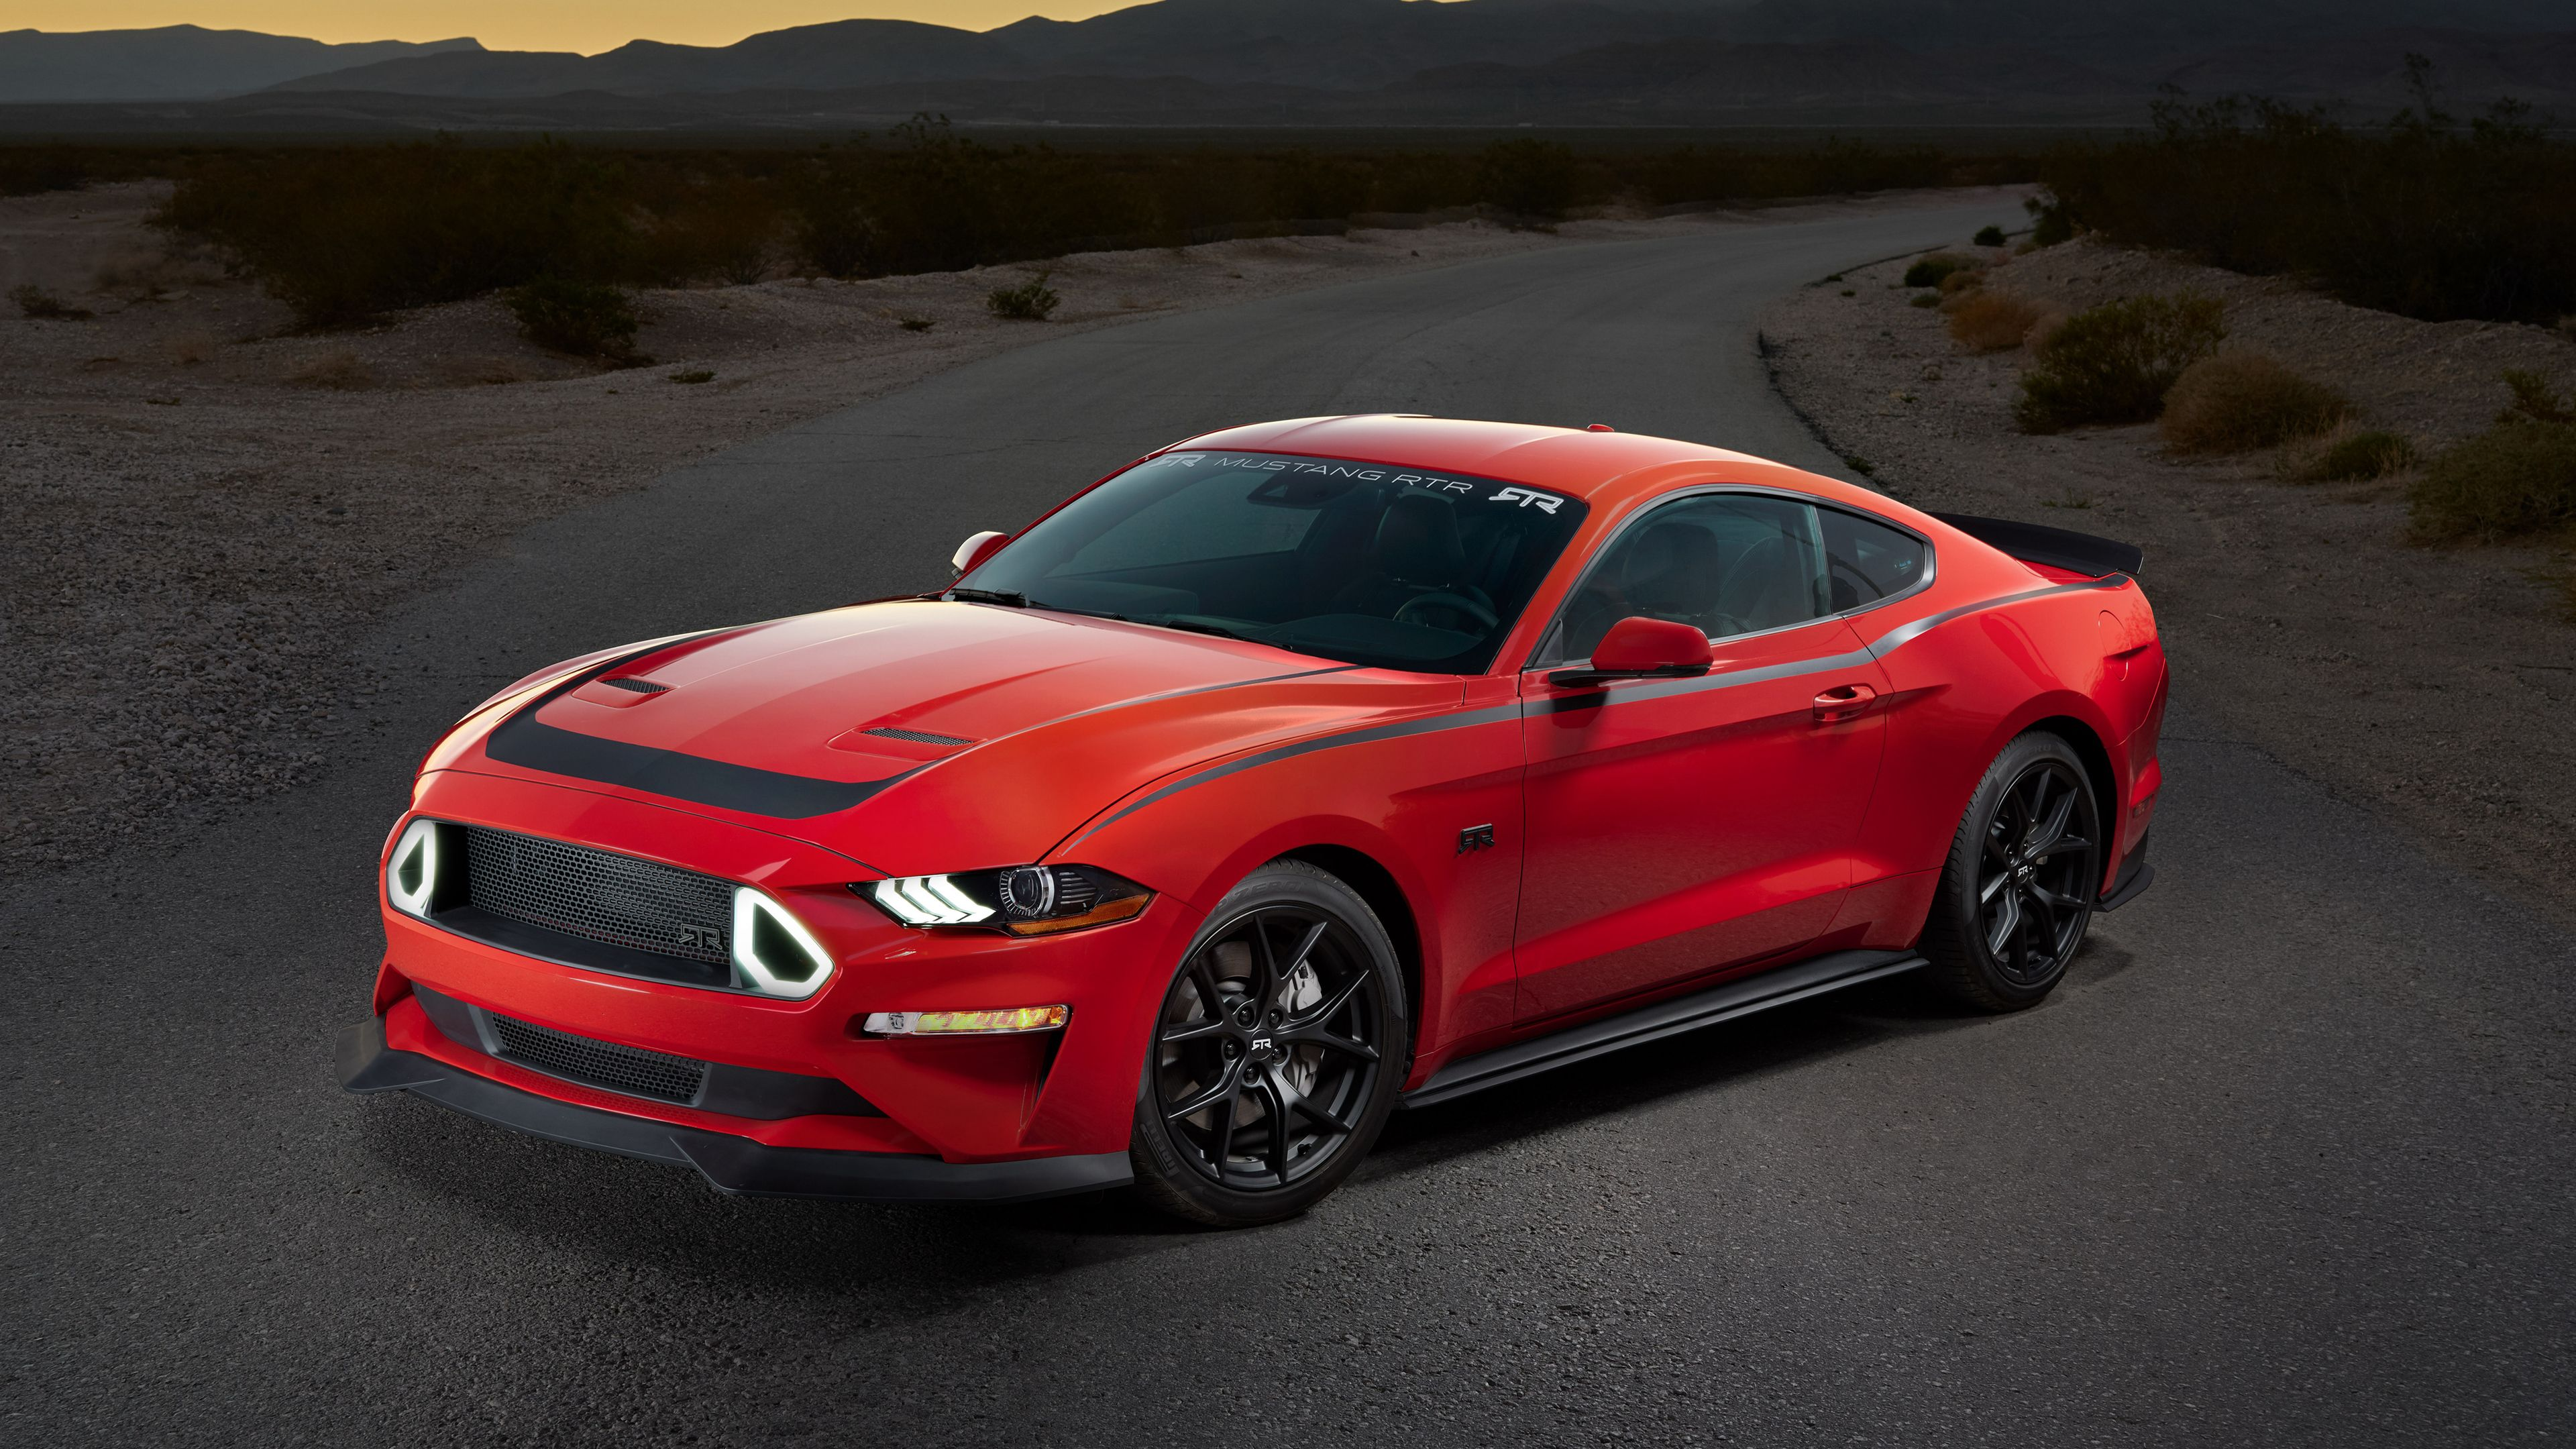 Wallpaper 4k 2019 Ford Series 1 Mustang Rtr 2018 Cars Wallpapers